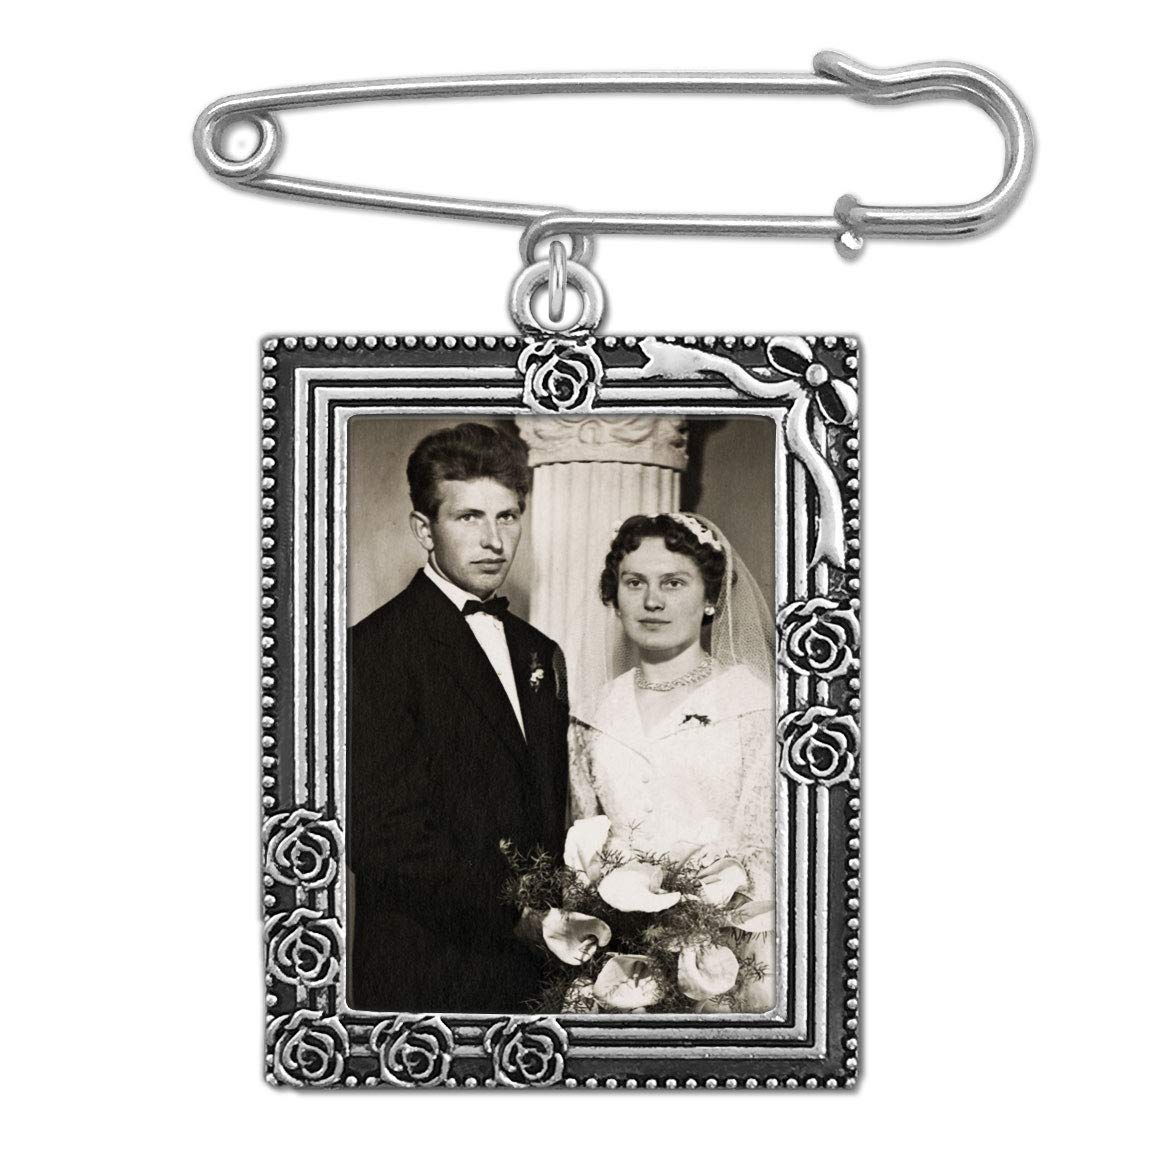 Wedding Boutonniere Bouquet Charm Pin Rose Portrait Frame Photo Charm Mother of The Bride Groom w/Photo Resizing Software PhotoJewelryMaking